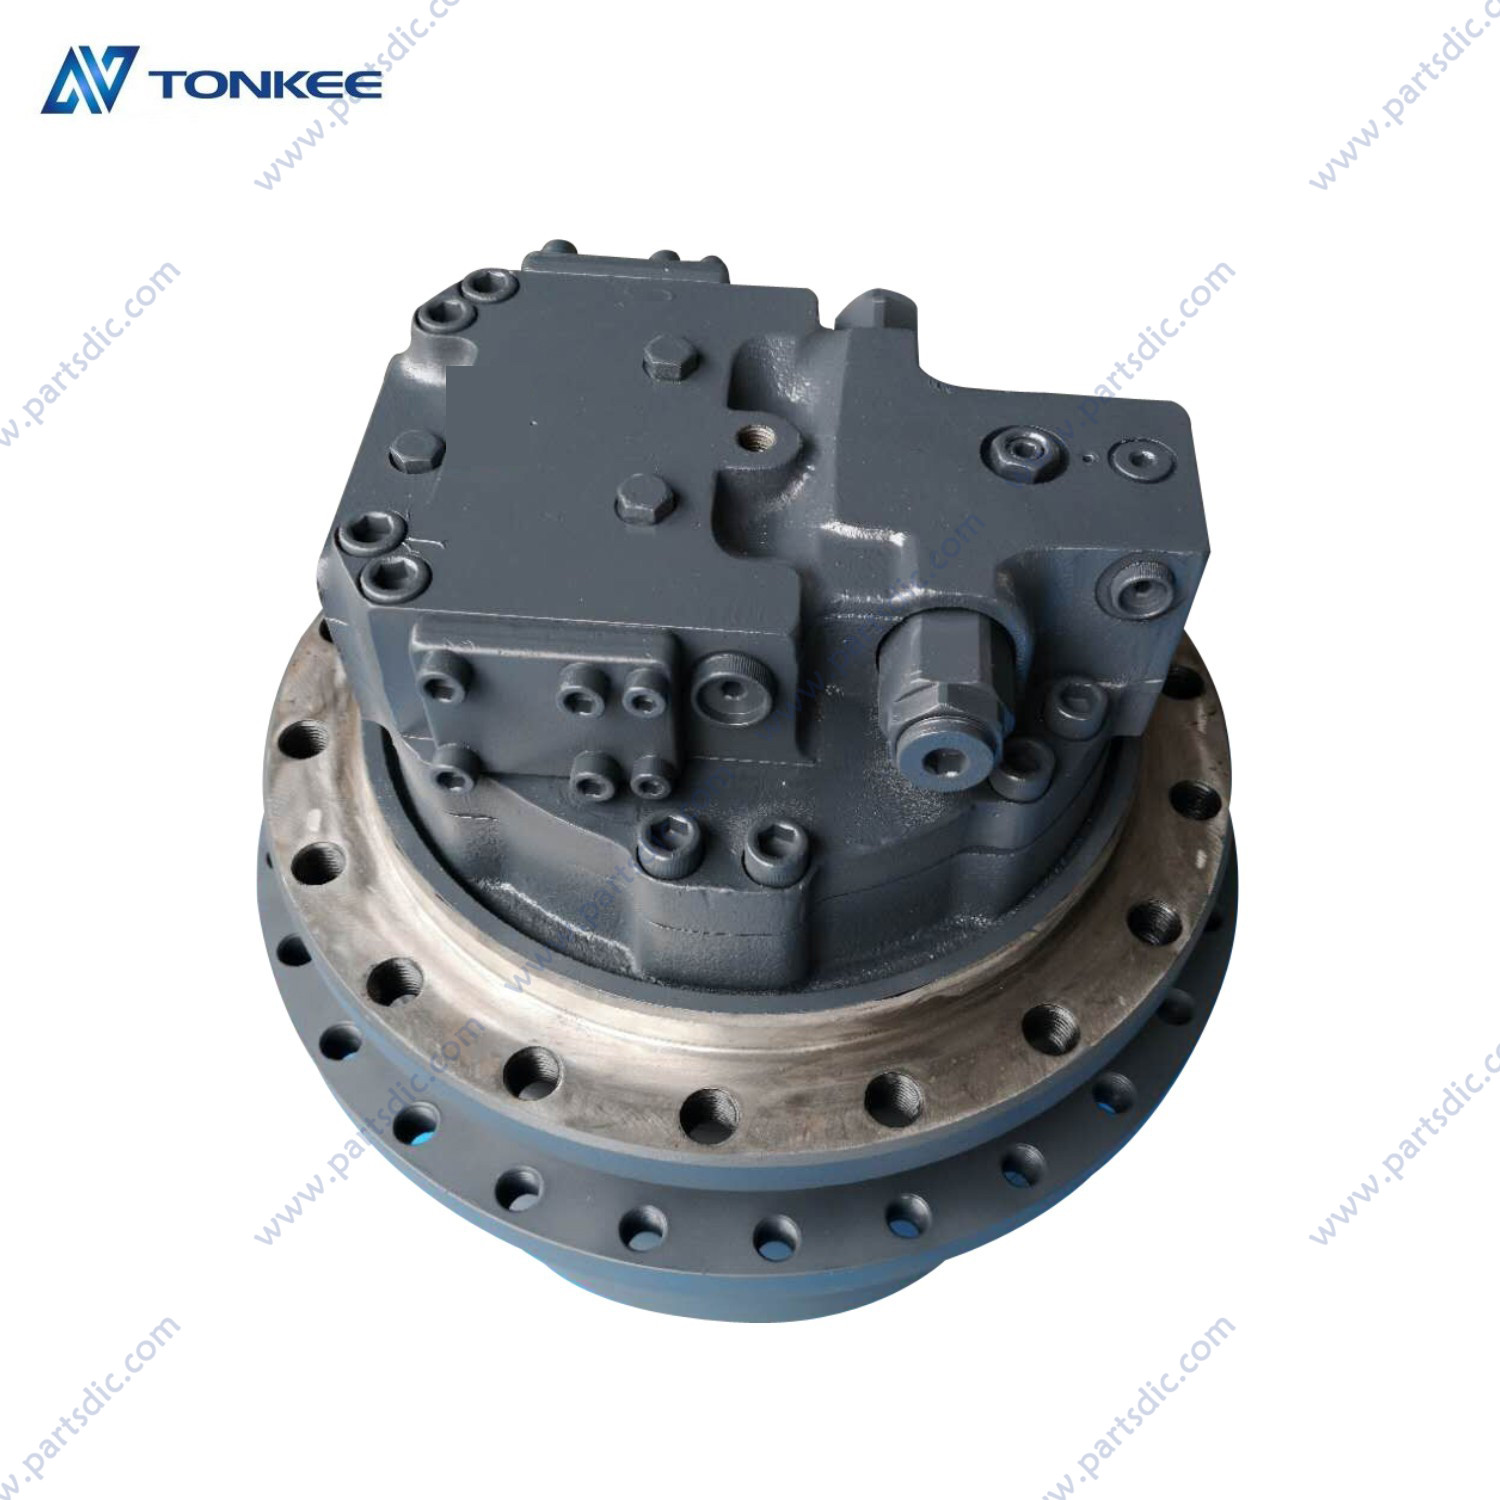 31Q9-40032 travel motor assy excavator Robex 330LC R330 R330LC-9S final drive group suitable for HYUNDAI excavation